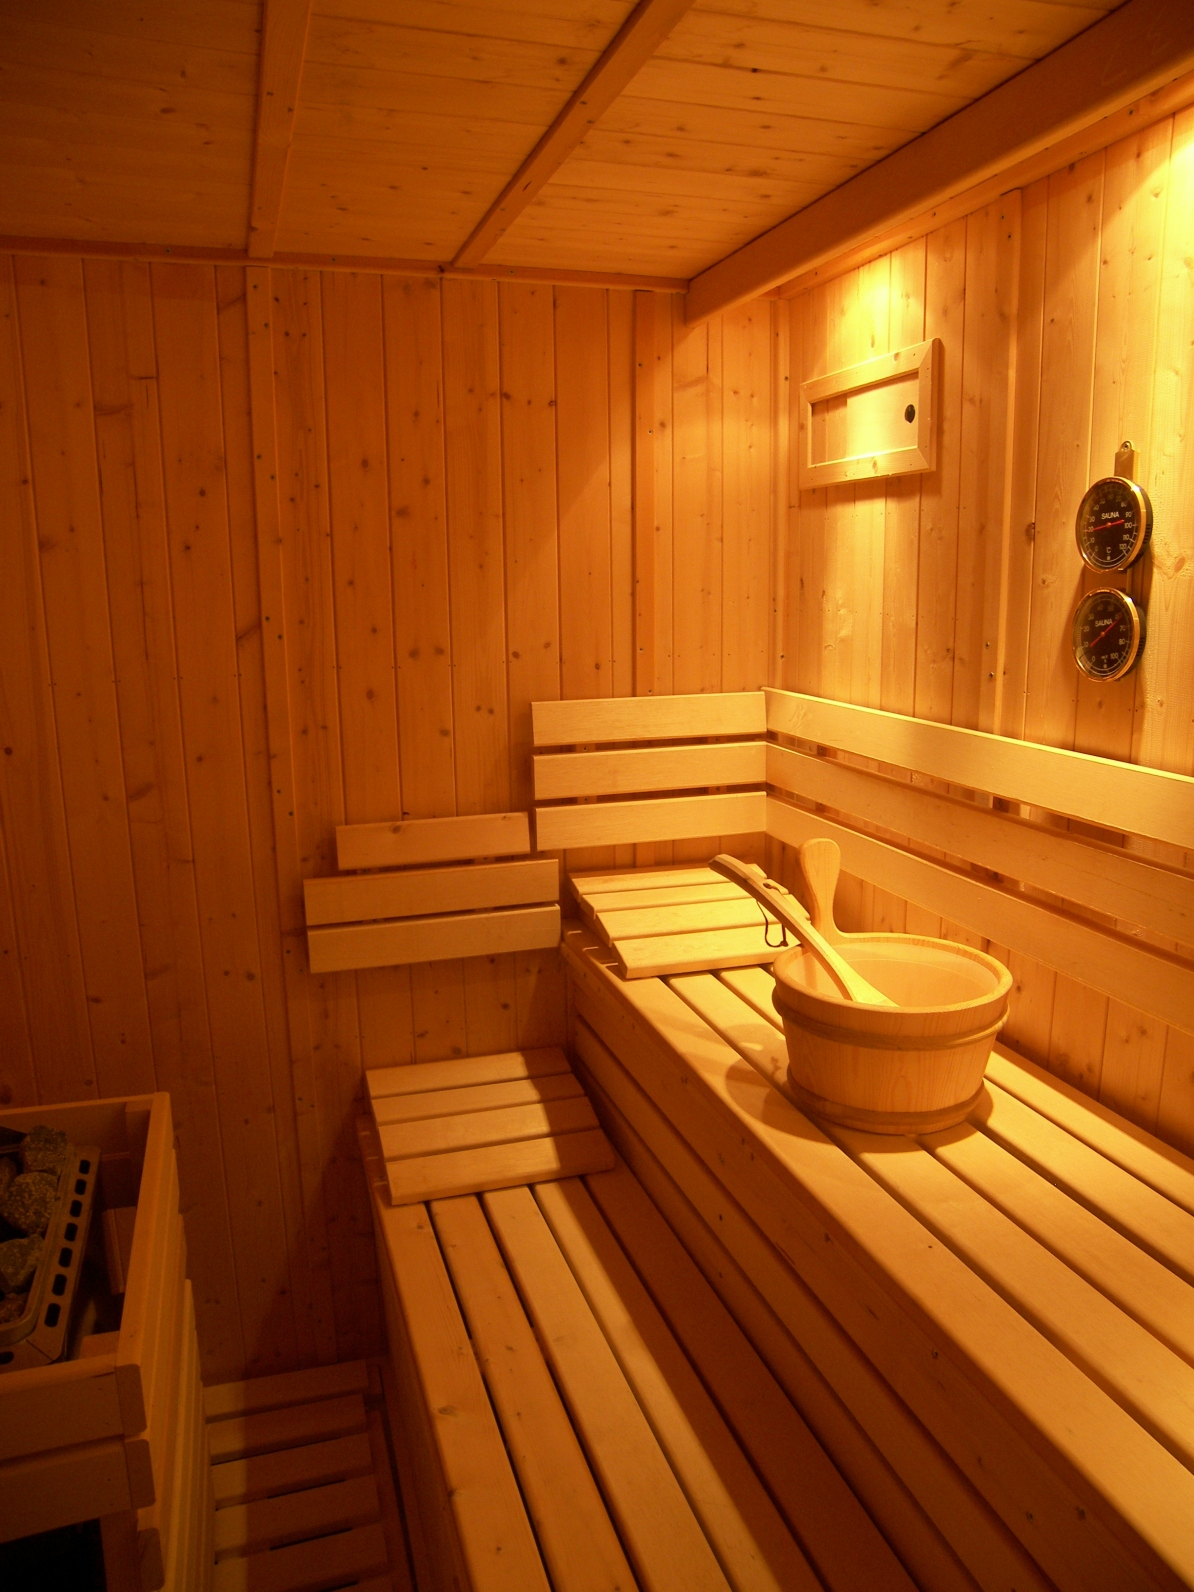 80 Best Sauna Images On Pinterest: The Best And The Best The Zoofilia